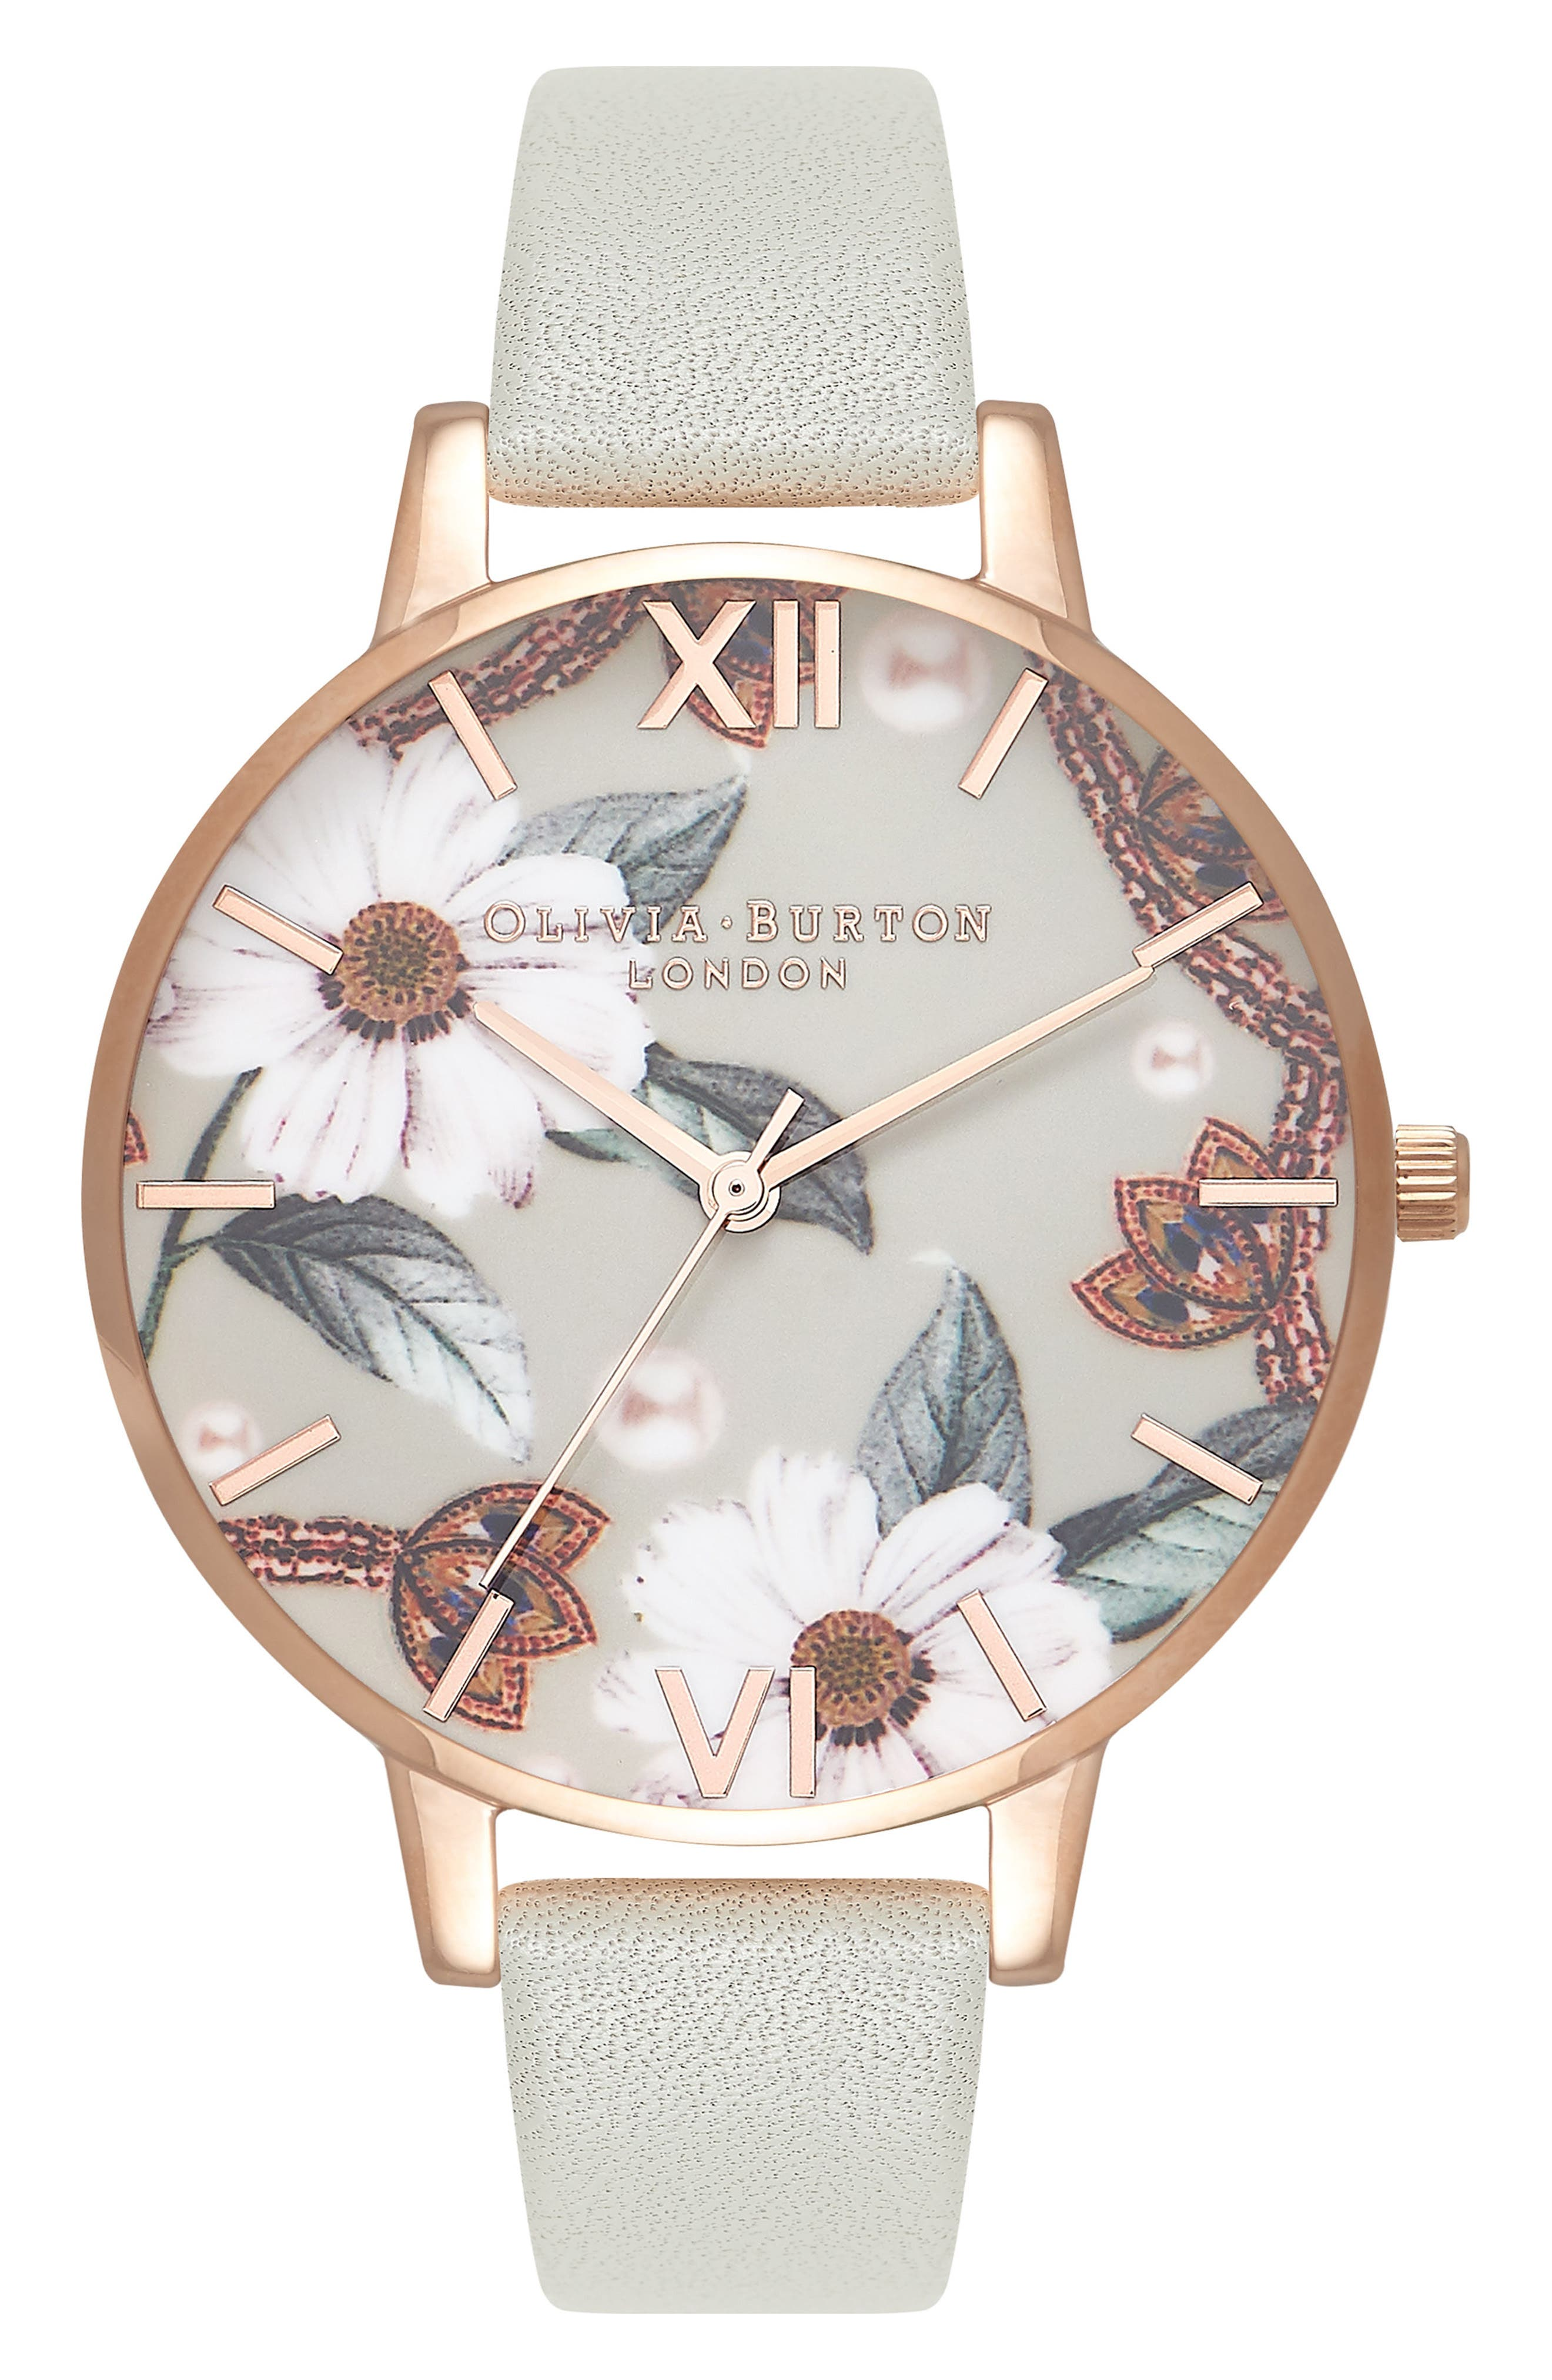 OLIVIA BURTON, Bejewelled Leather Strap Watch, 38mm, Main thumbnail 1, color, GREY/ FLORAL/ ROSE GOLD